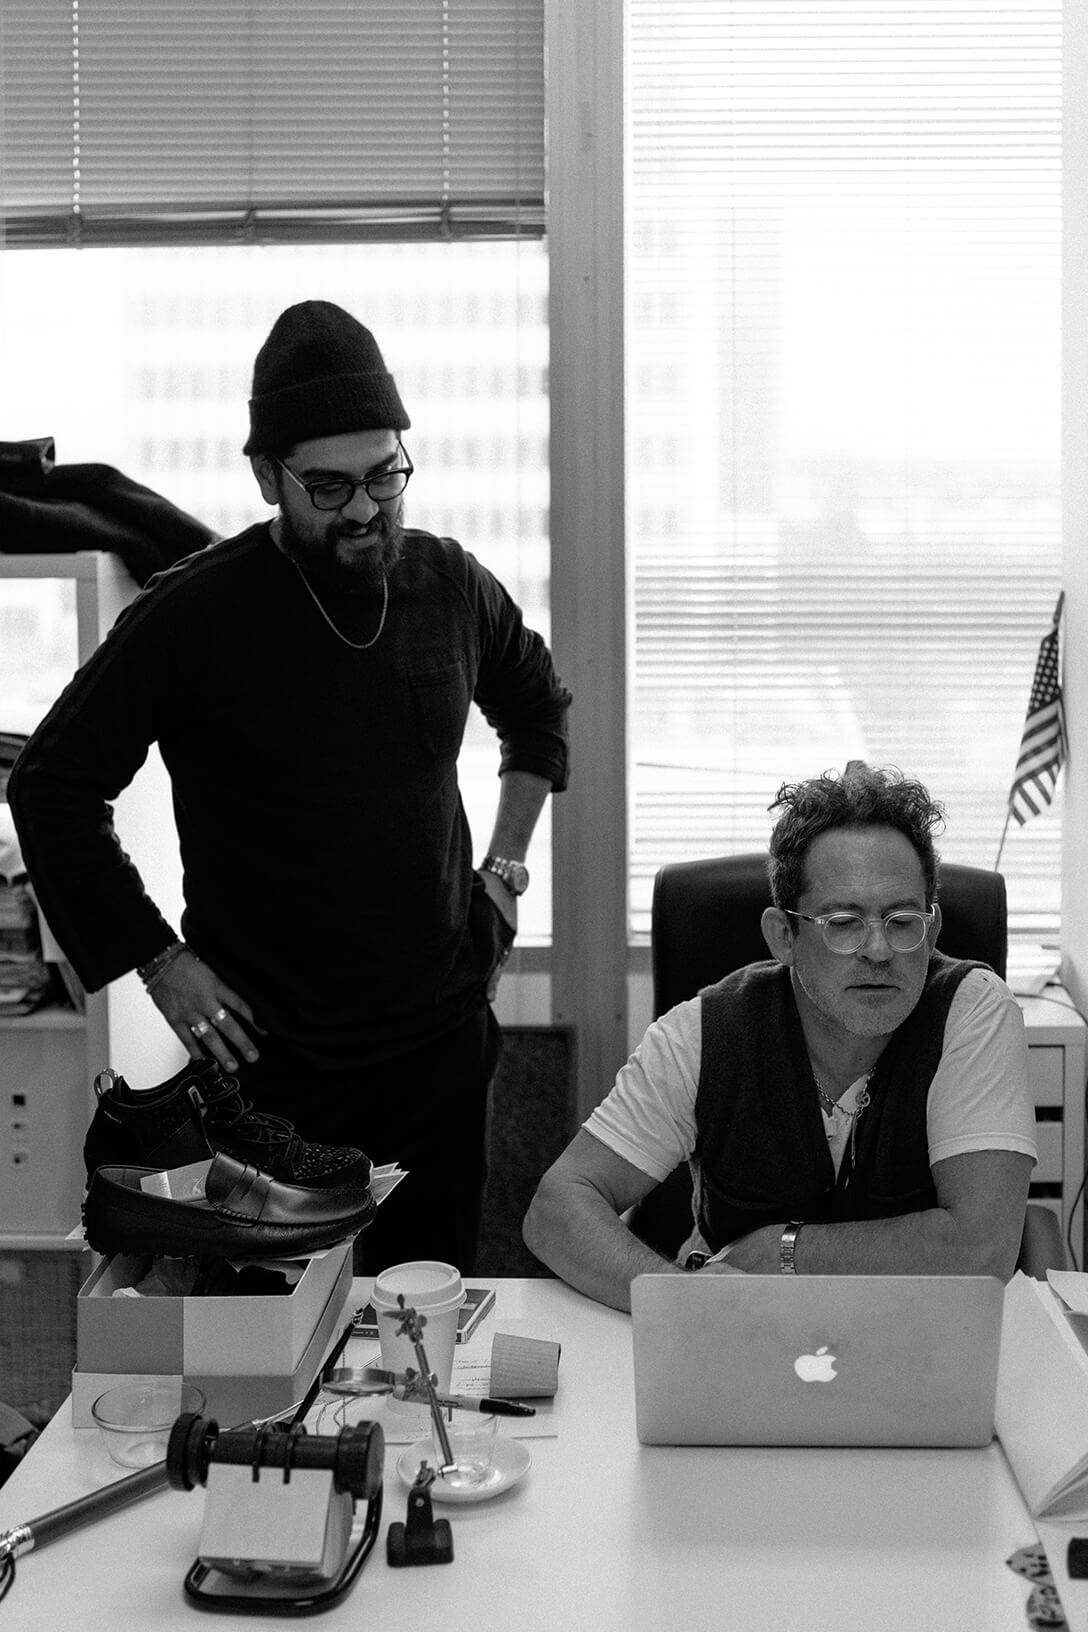 Garrett Leight and Mark McNairy in office looking at Macbook screen